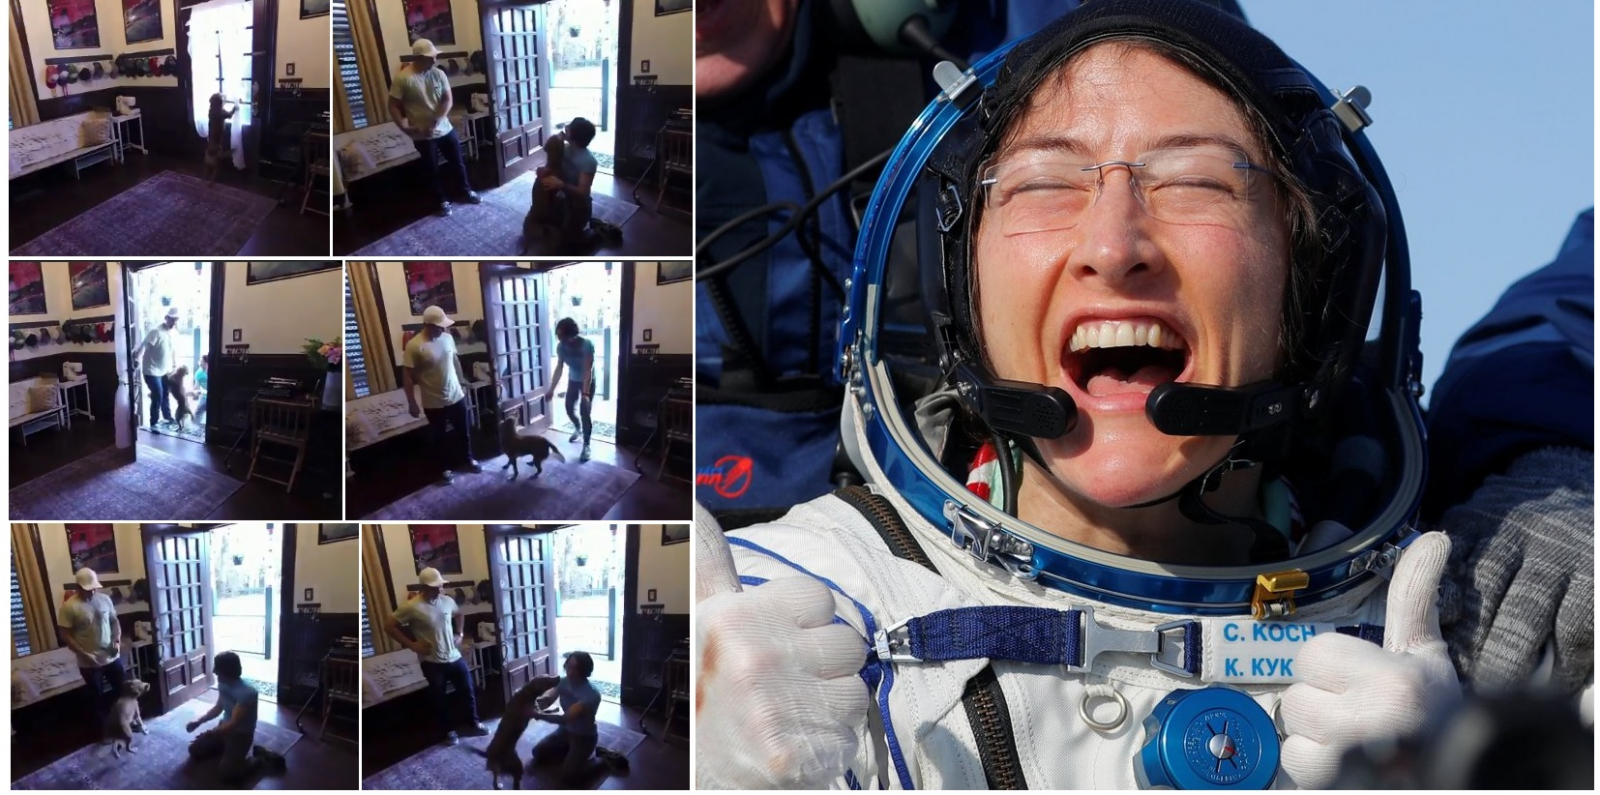 NASA astronaut Christina Koch's reunion with her dog after 328 days is adorable [VIDEO] thumbnail